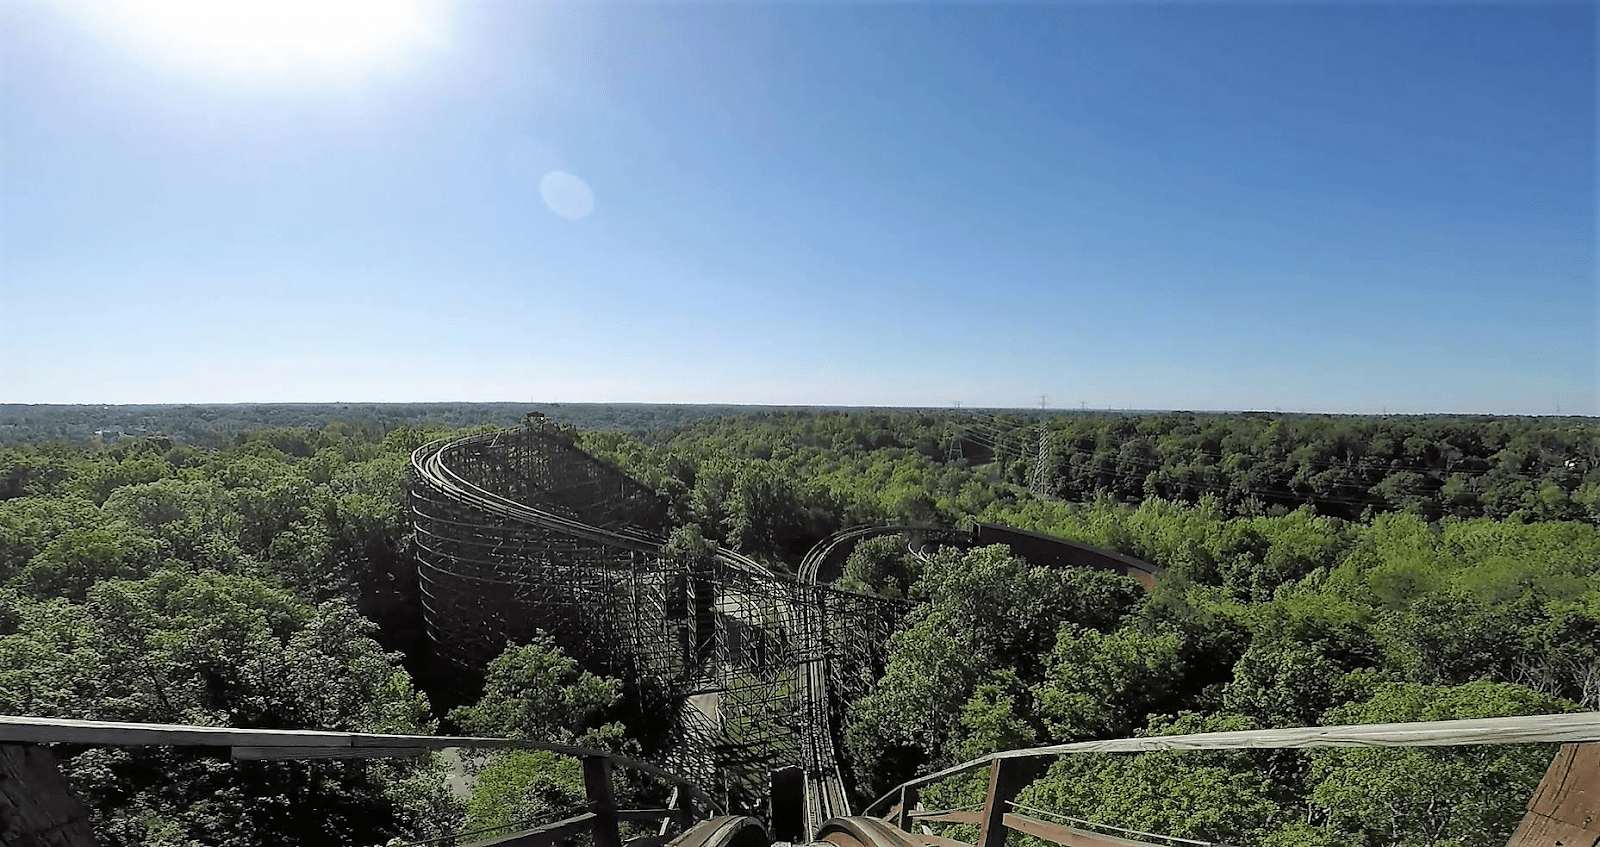 Kings Island Ohio Roller Coaster view